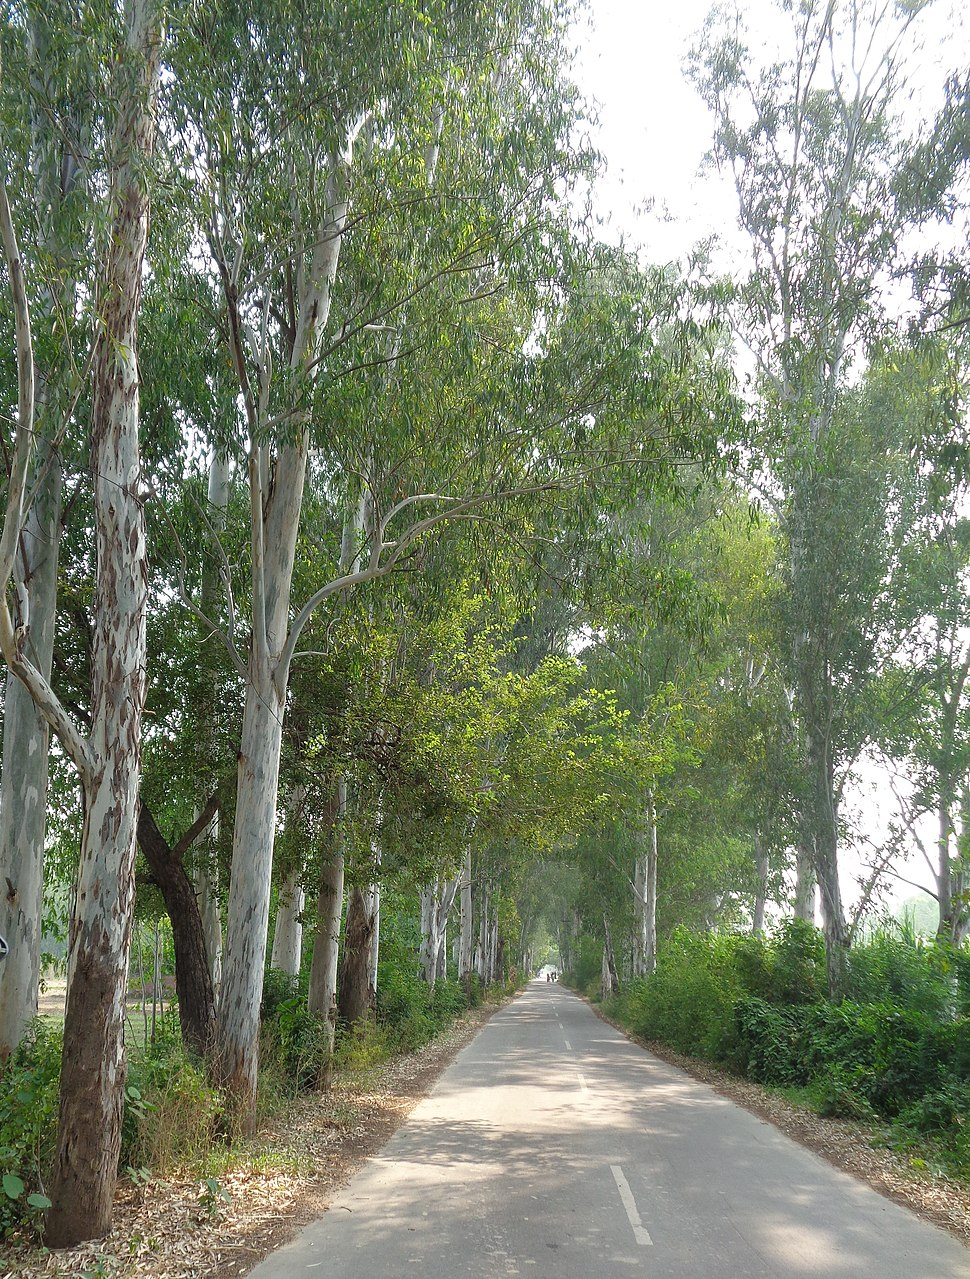 Eucalyptus plantation along rural roads in Punjab